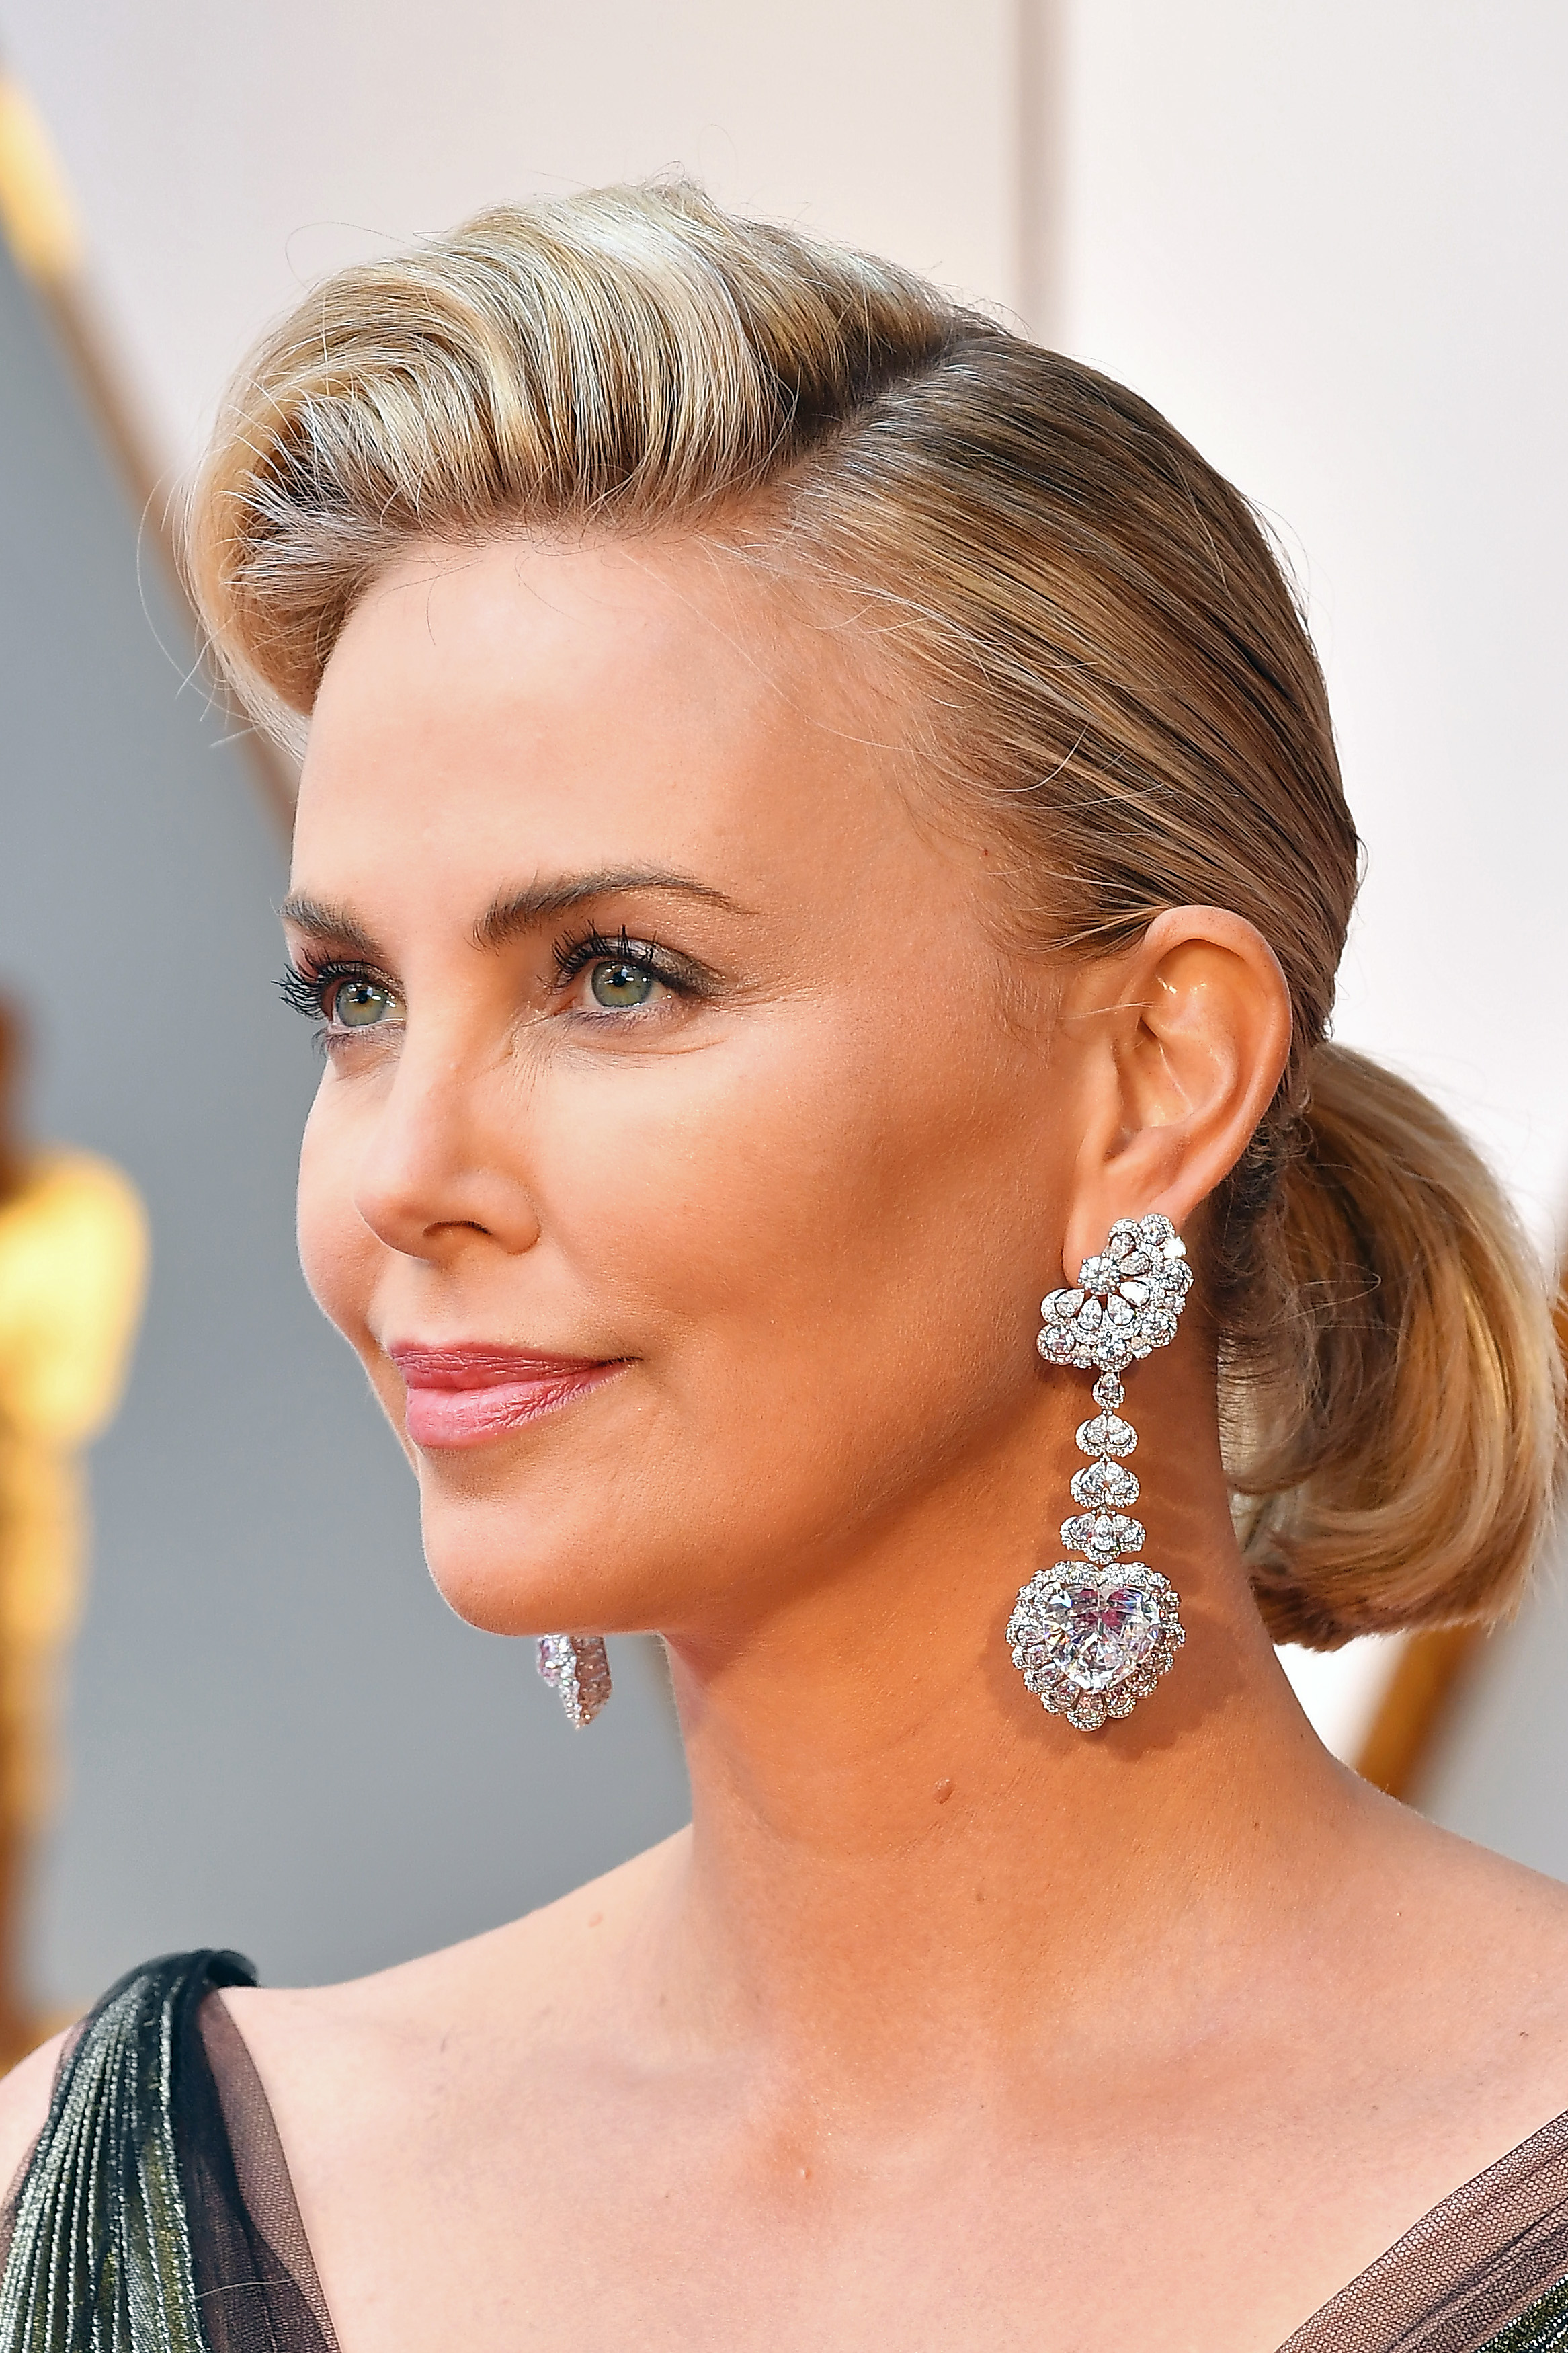 Charlize Theron's Retro Ponytail Look at the Oscars